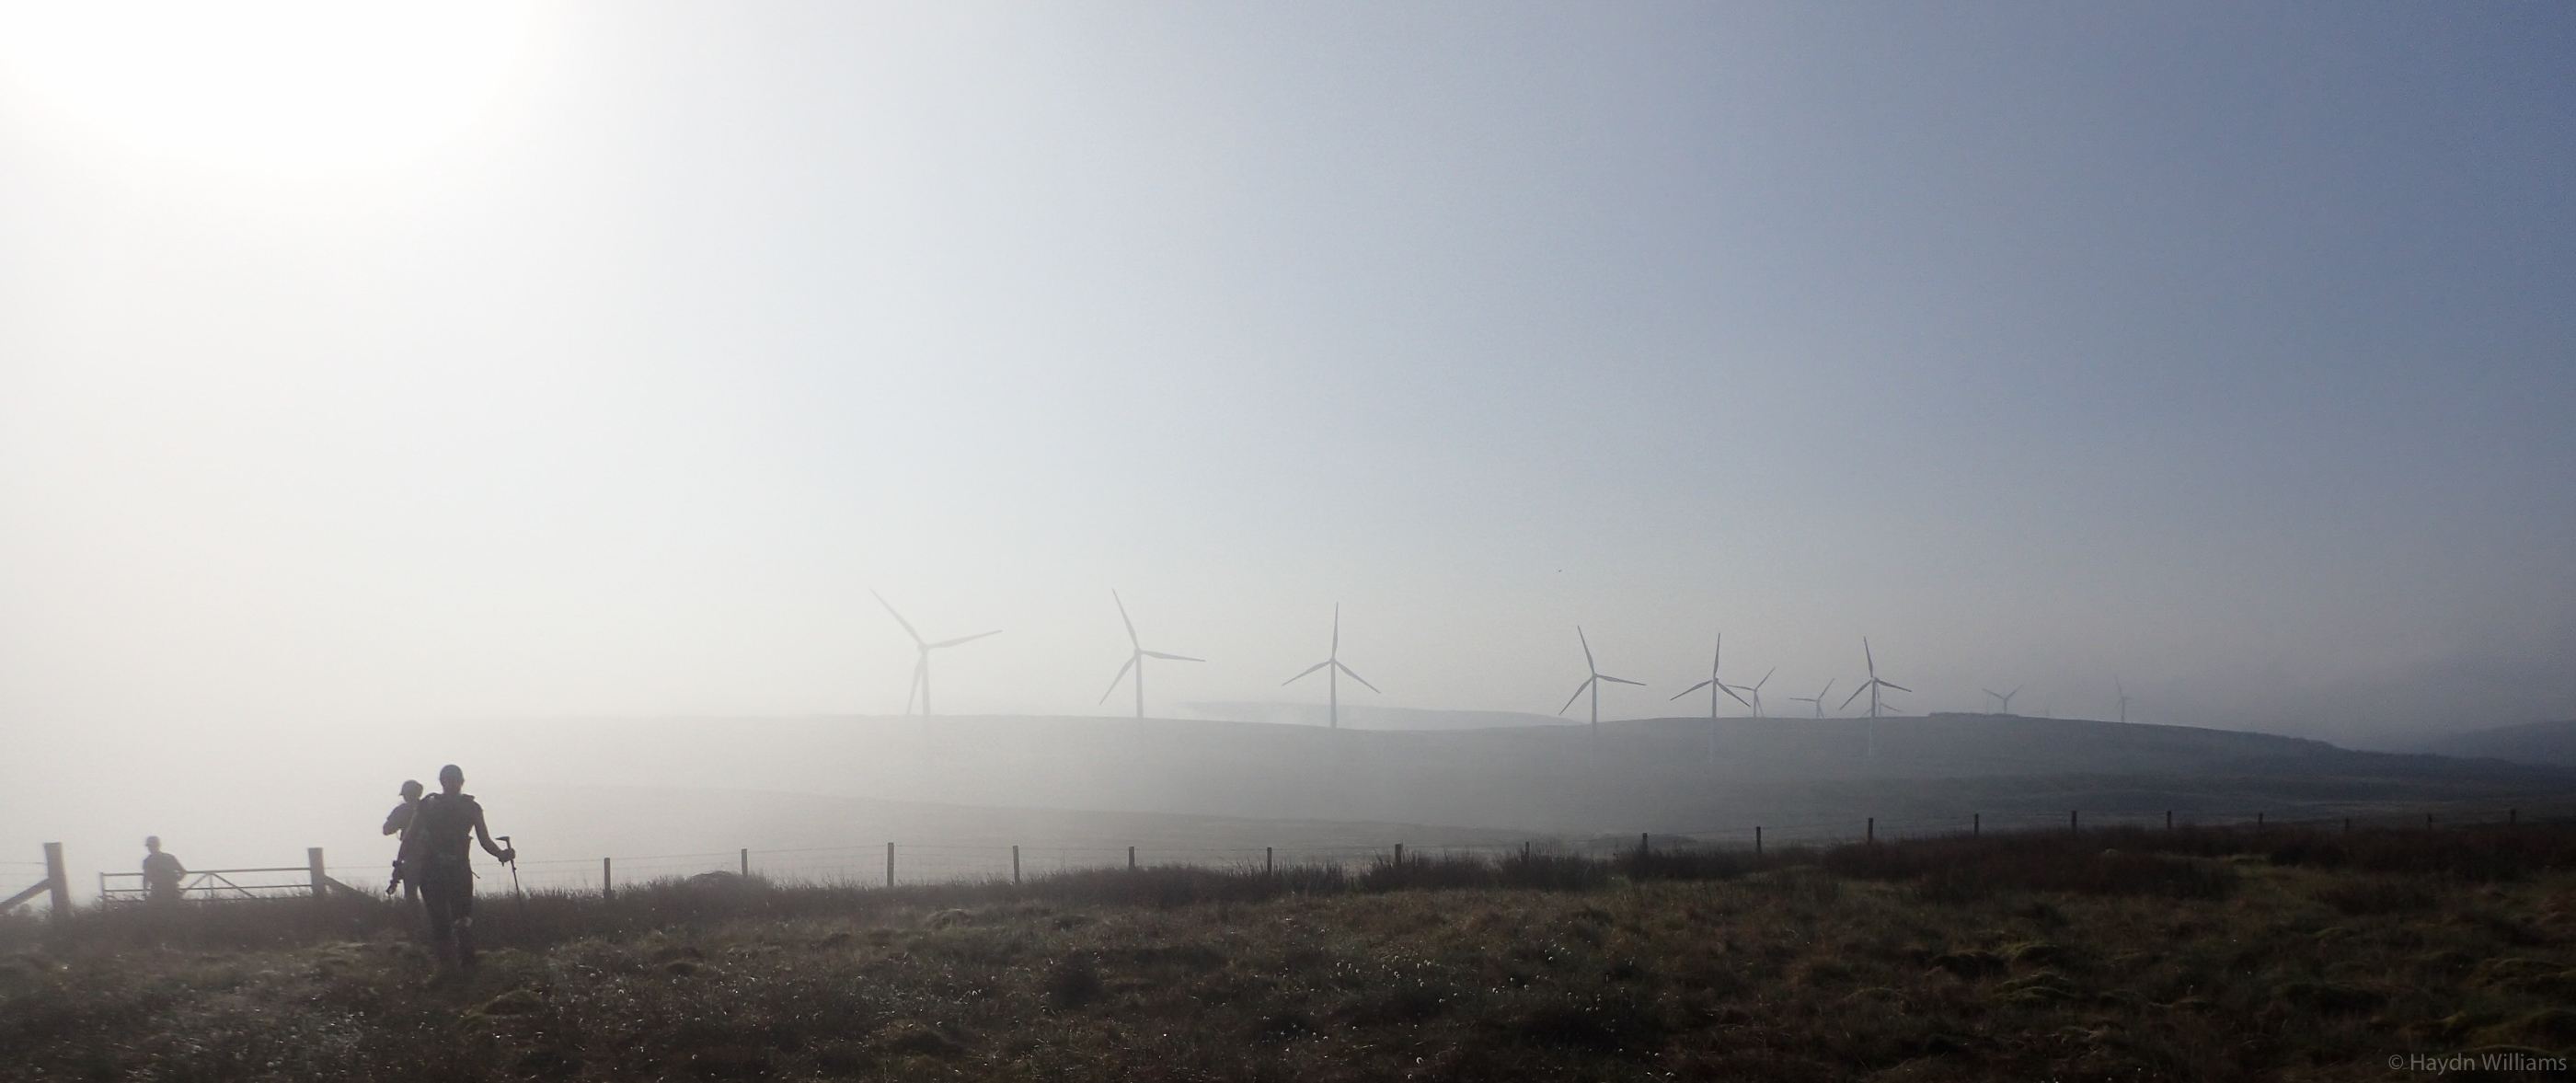 Day 4 - Starting the day towards the wind farm. © Haydn Williams 2017